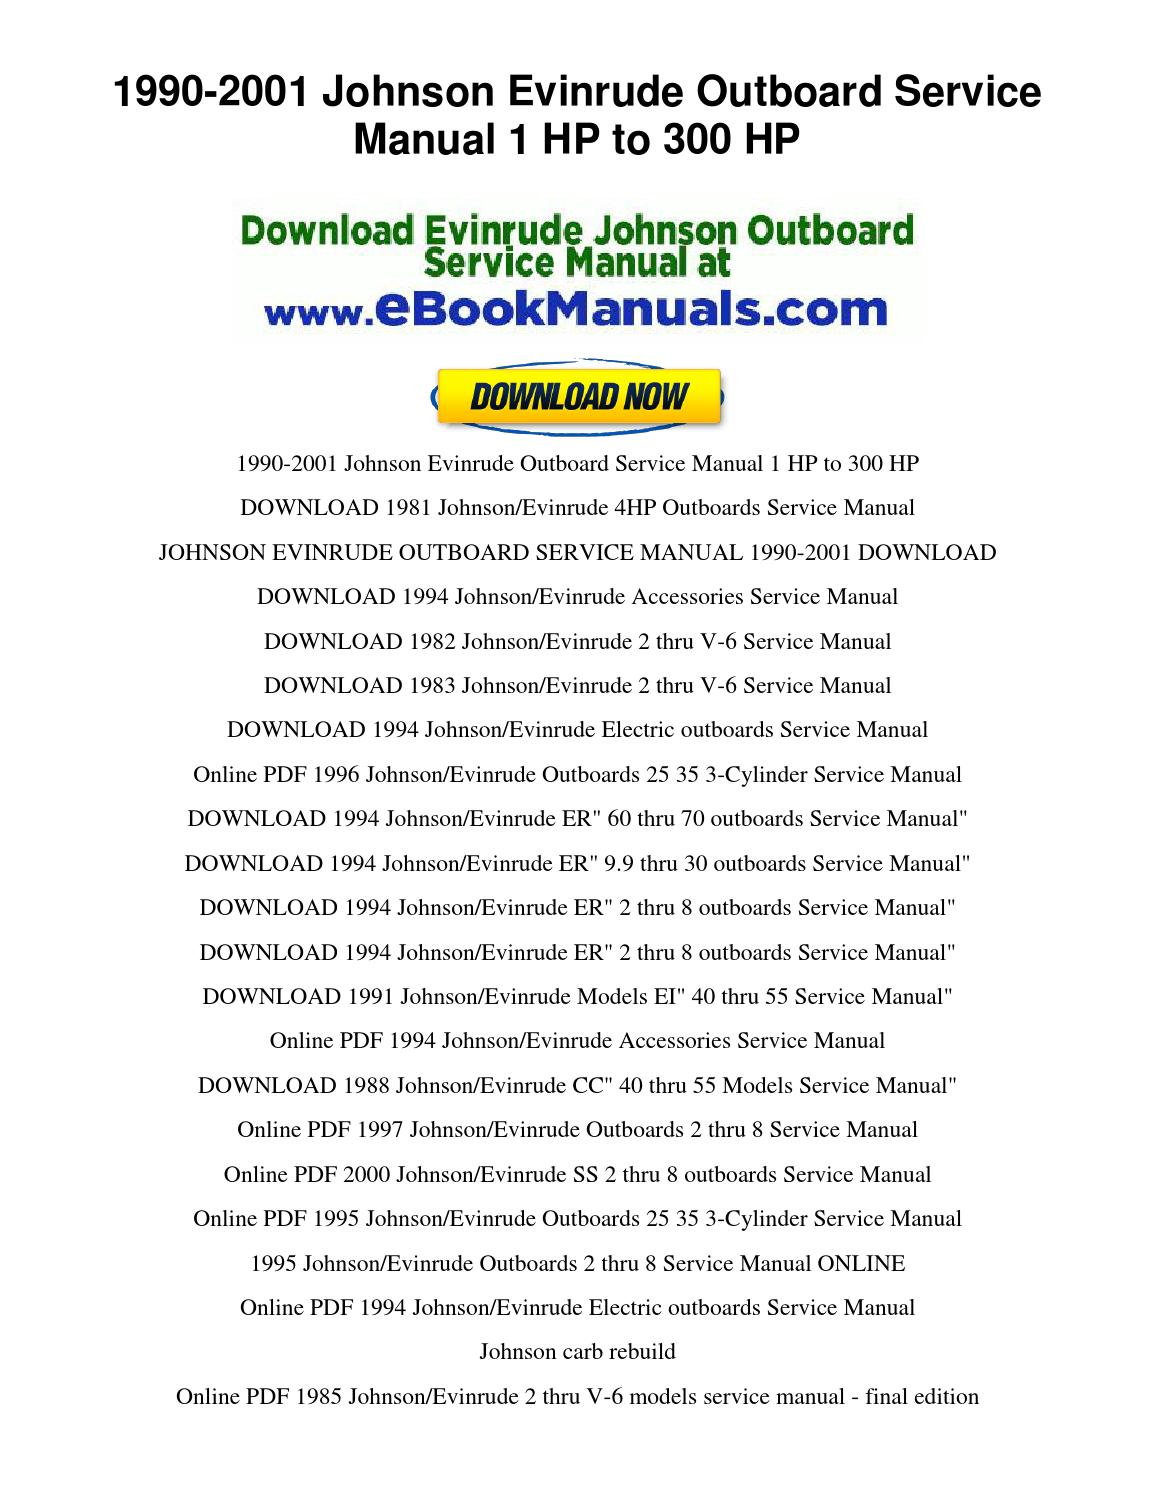 1990 2001 johnson evinrude outboard service manual 1 hp to 300 hp by  ServiceManualsDownloadOnline - issuu